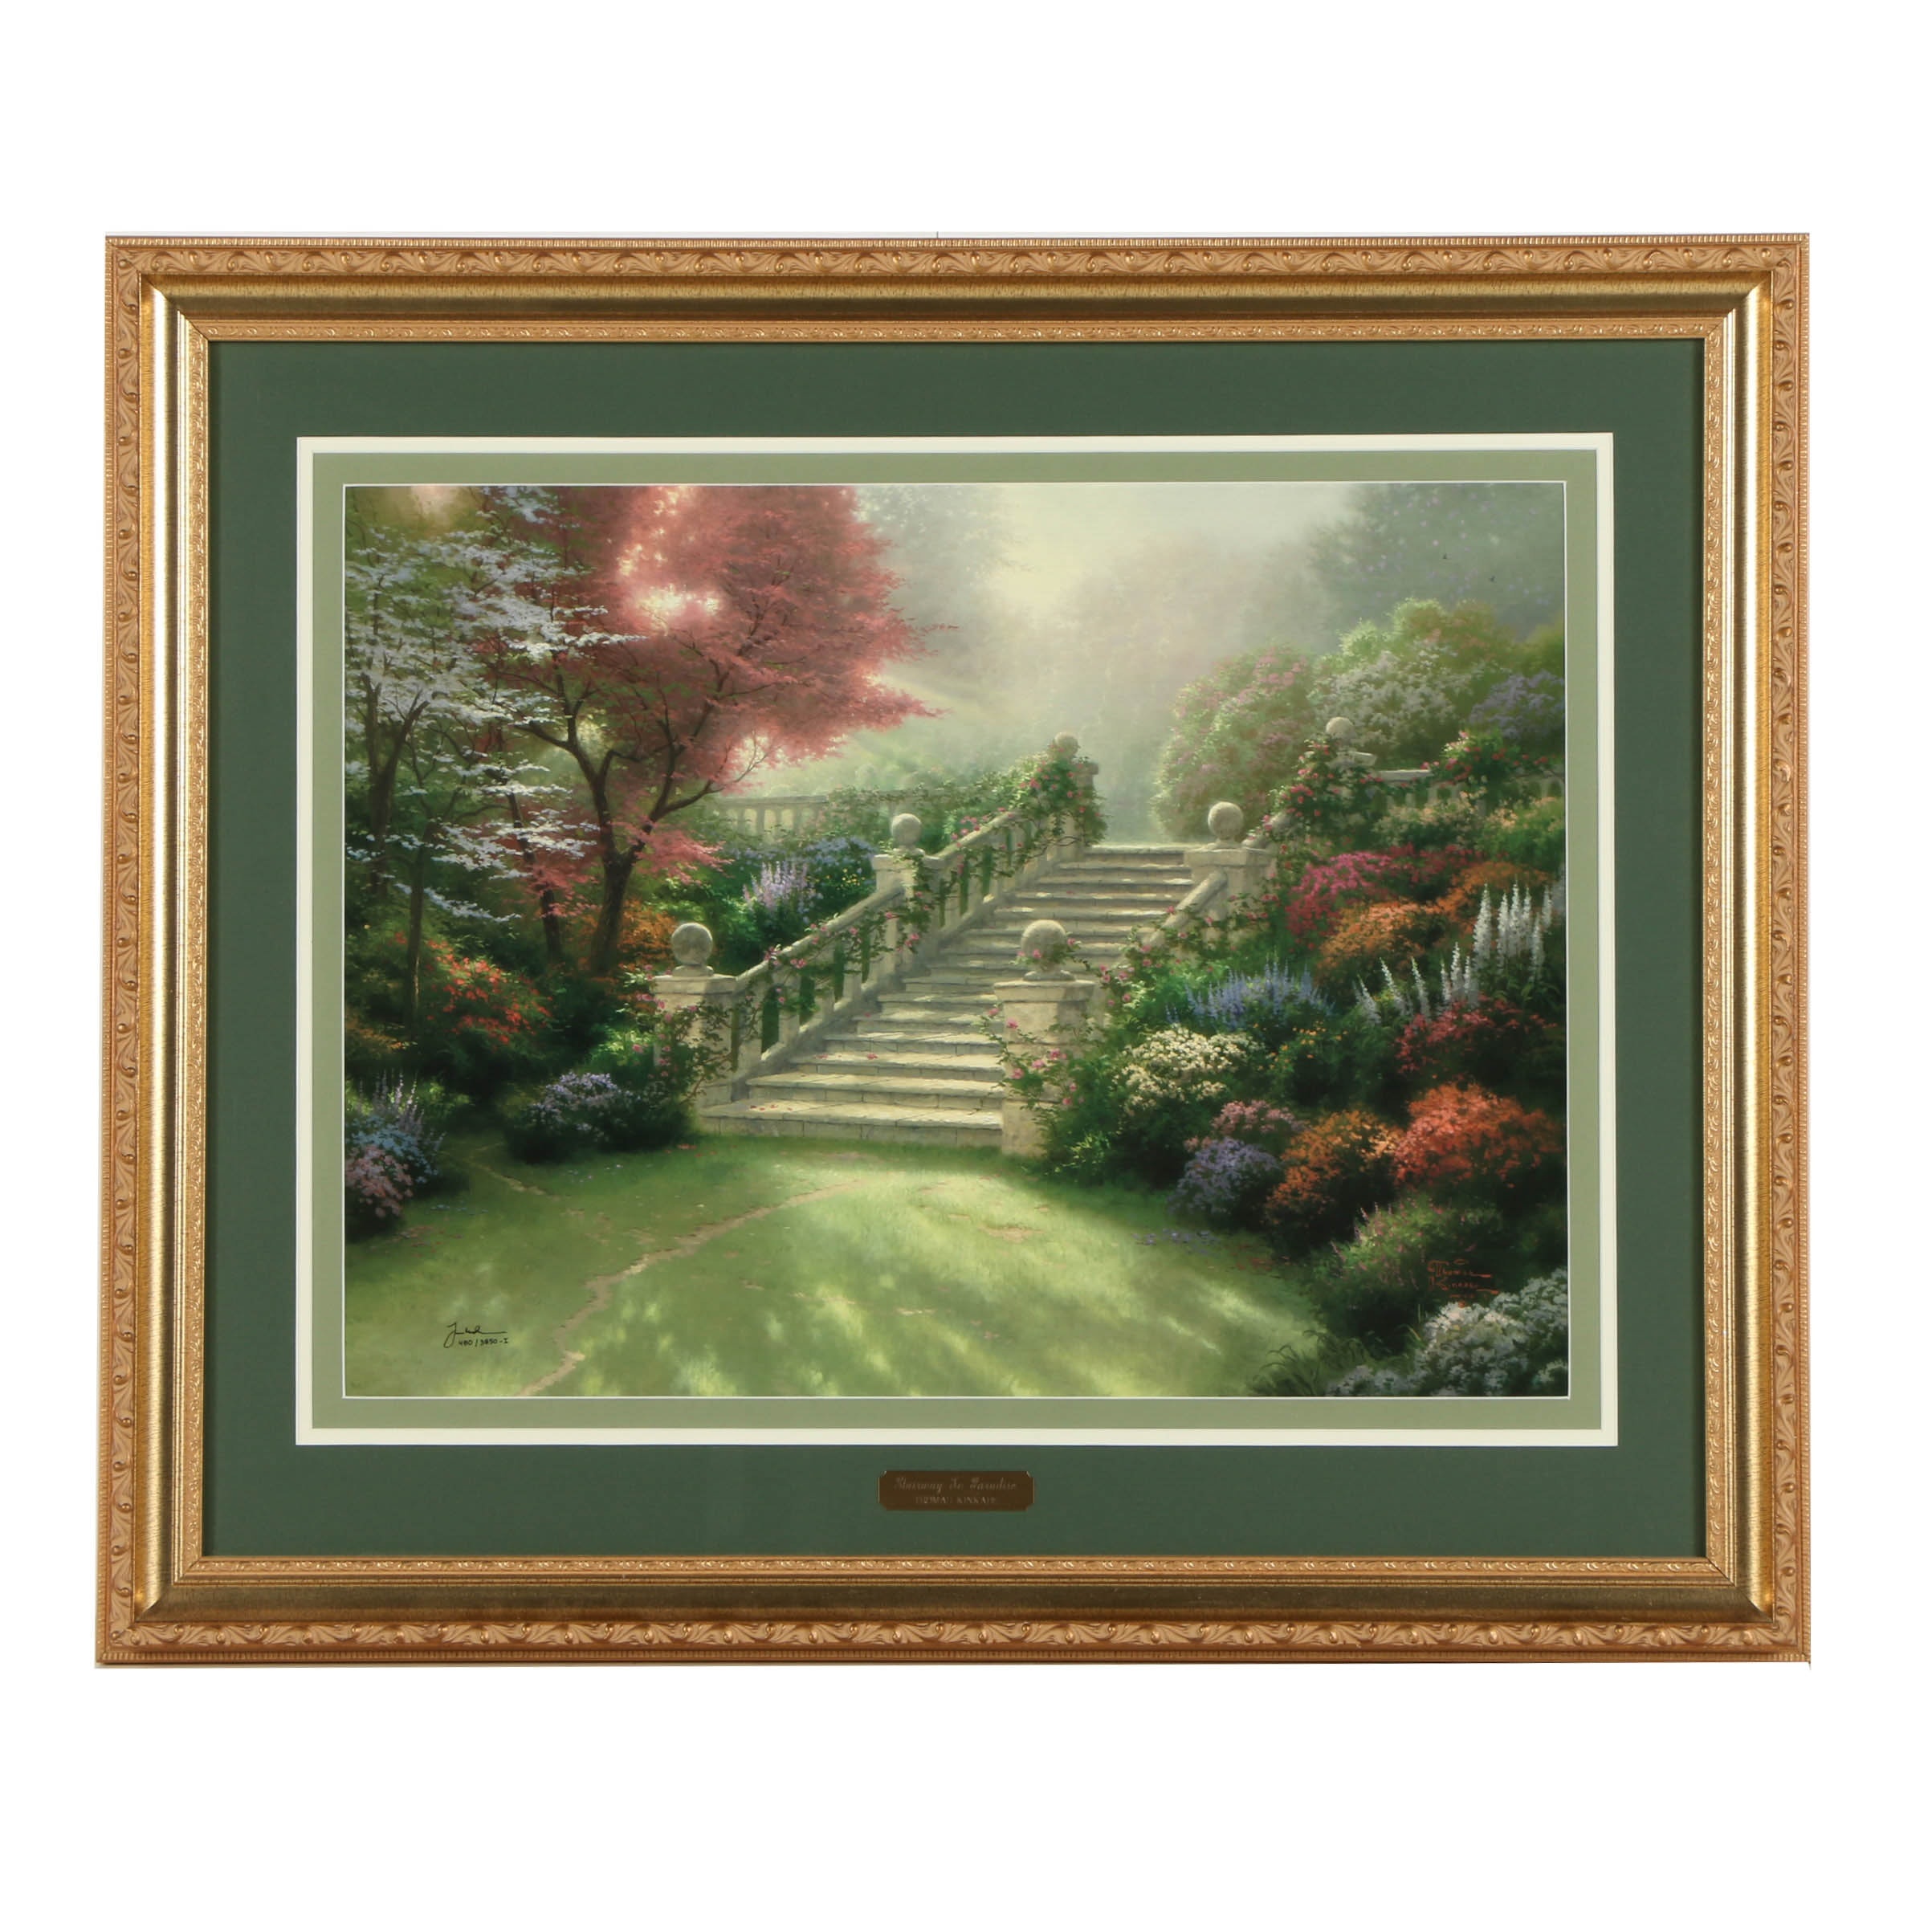 """Thomas Kinkade Limited Edition Offset Lithograph on Paper """"Stairway to Paradise"""""""